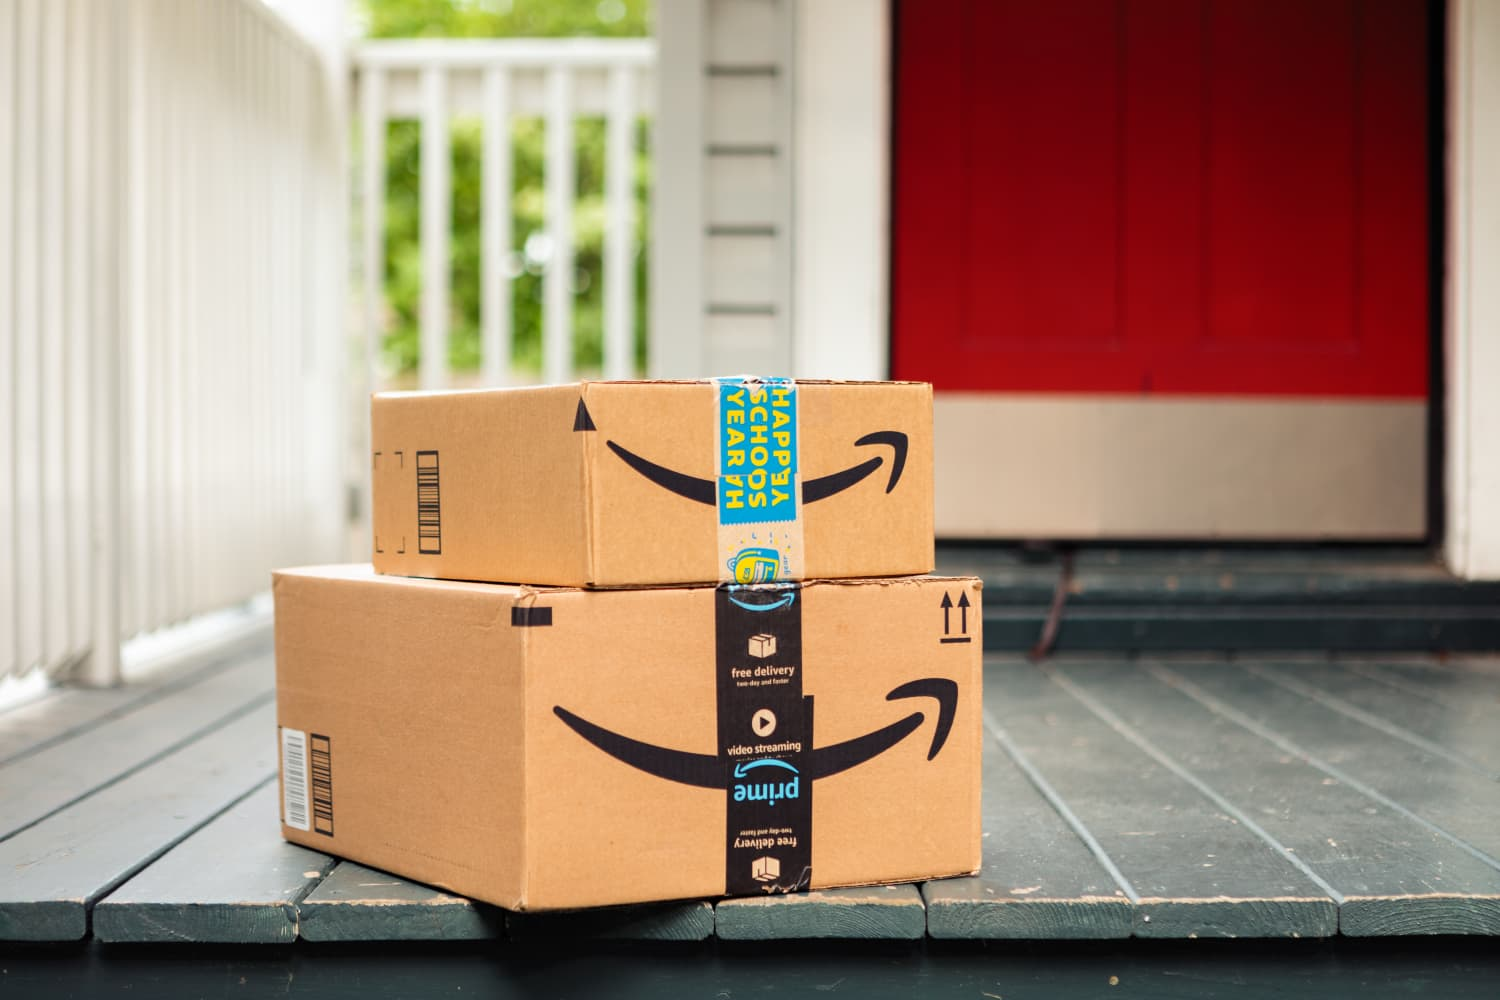 Amazon Prime Day 2020 Is October 13—Here's What You Need to Know, Plus Deals You Can Shop Now